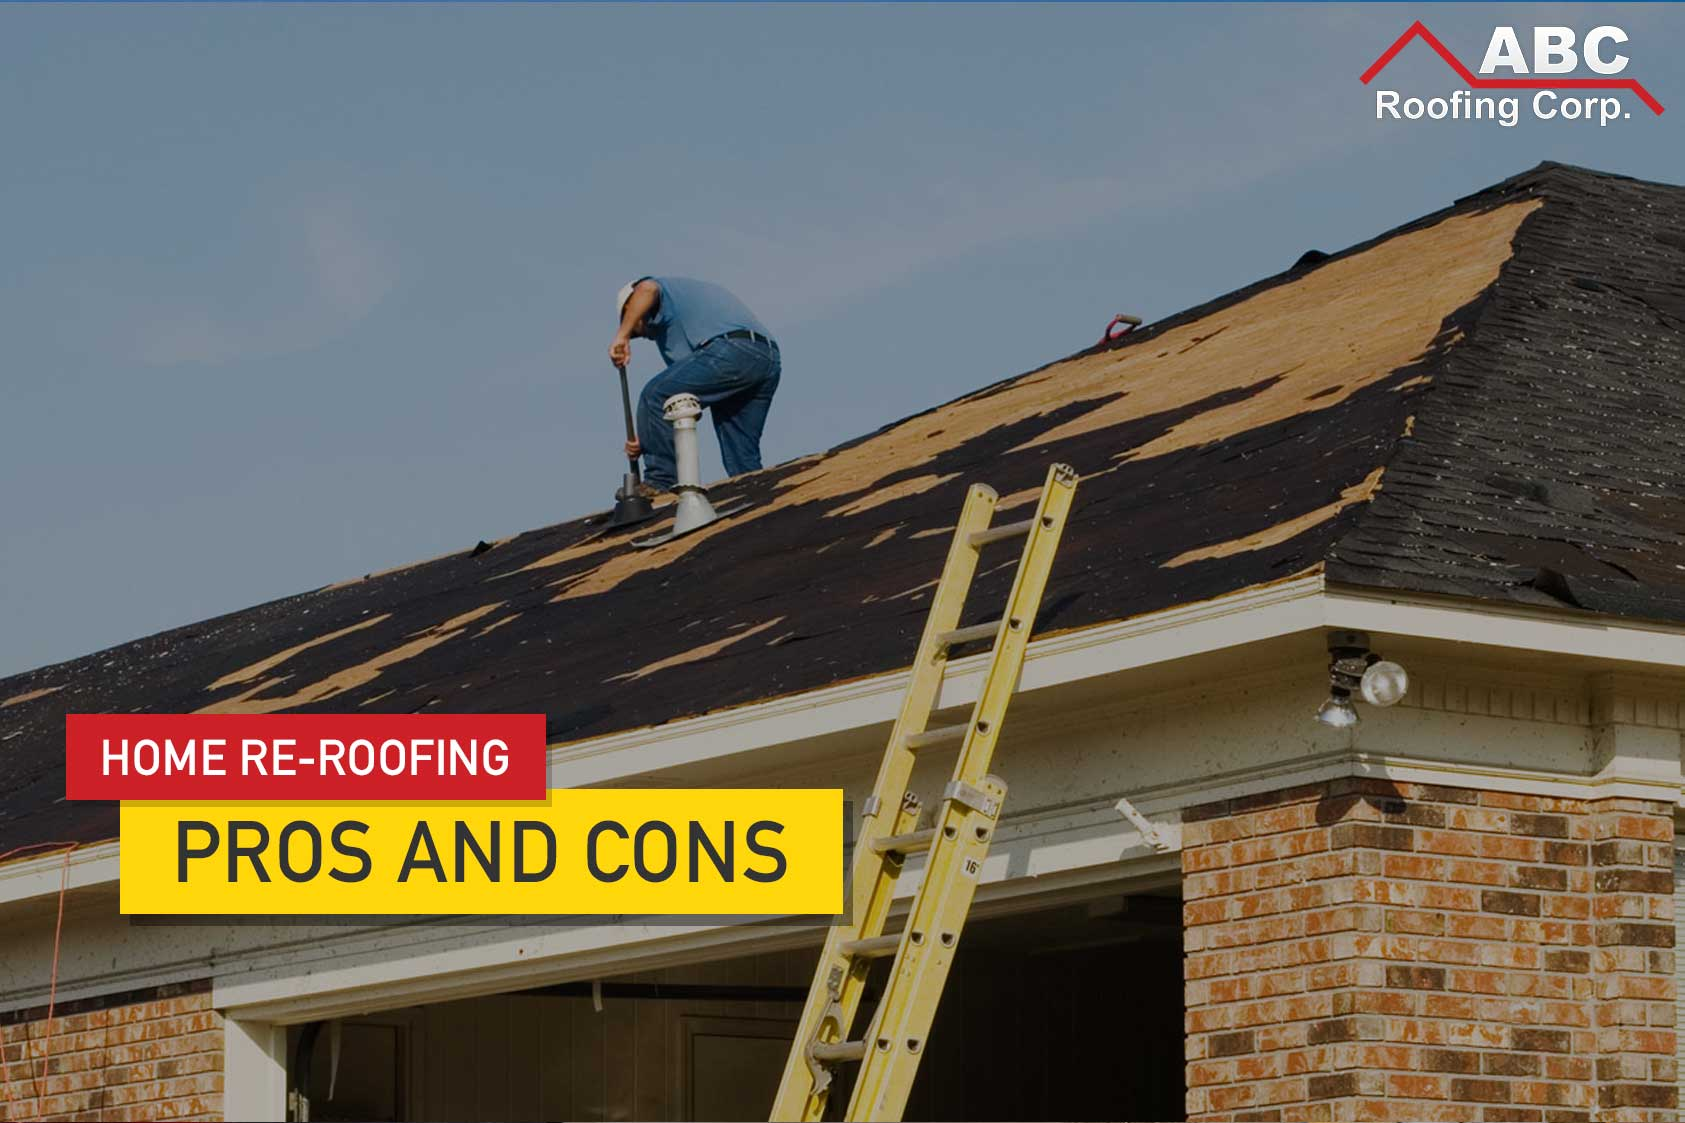 Home Re-Roofing